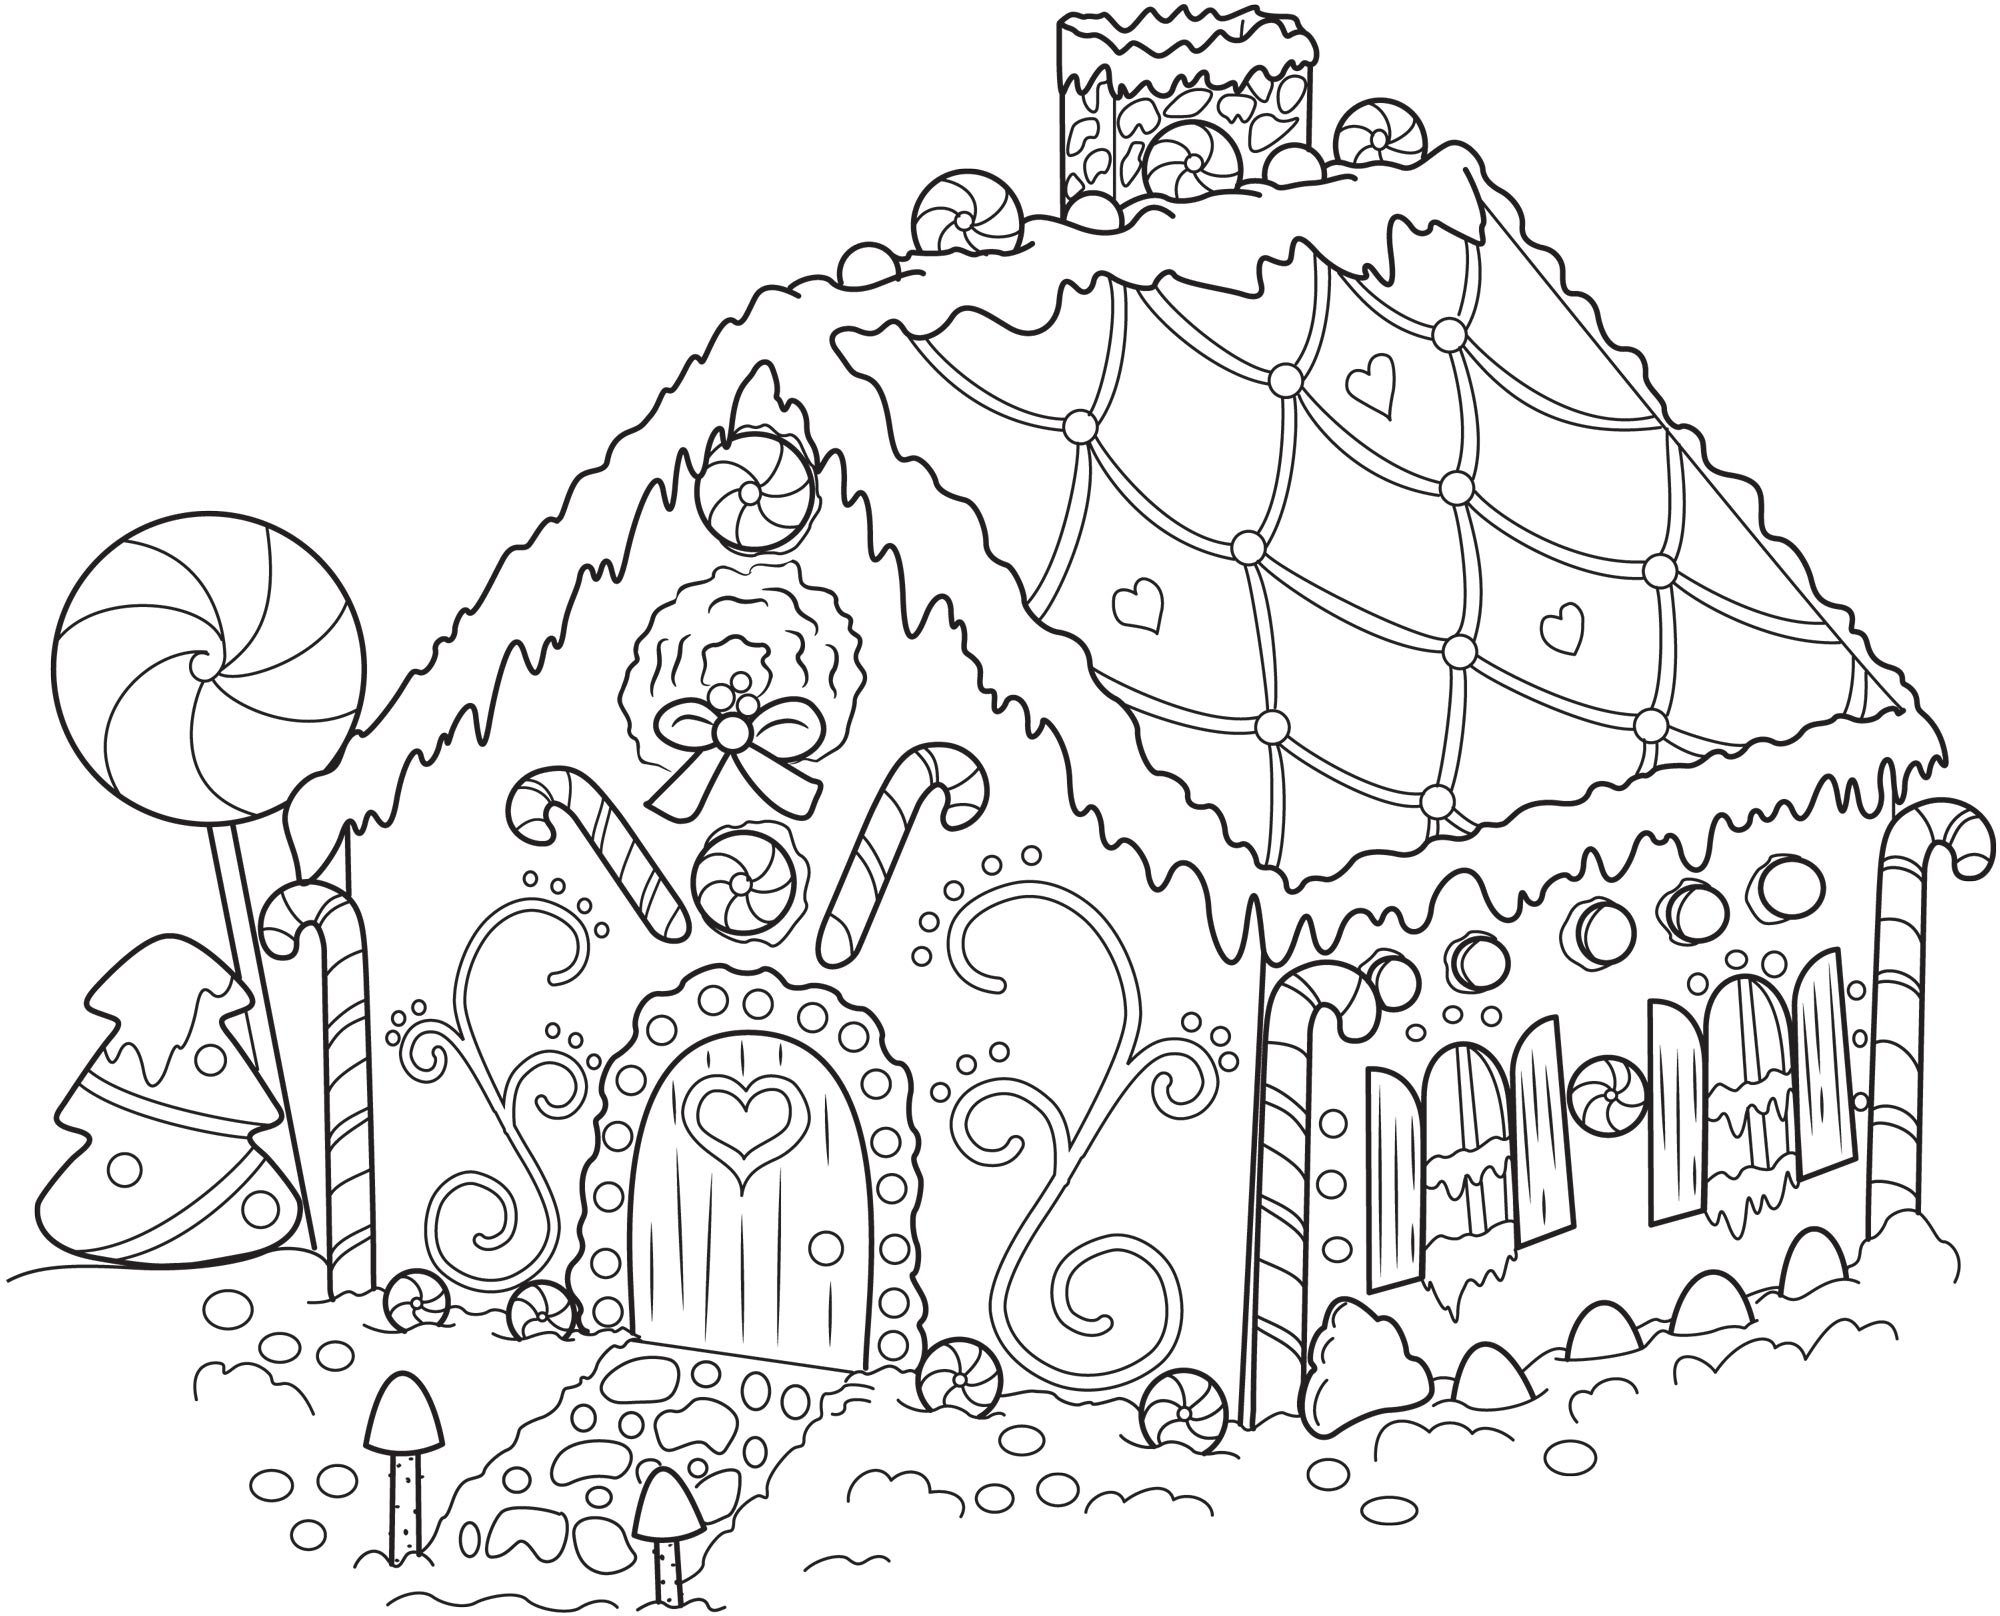 Christmas Coloring Pages For Adults Free Printable With Merry Collection